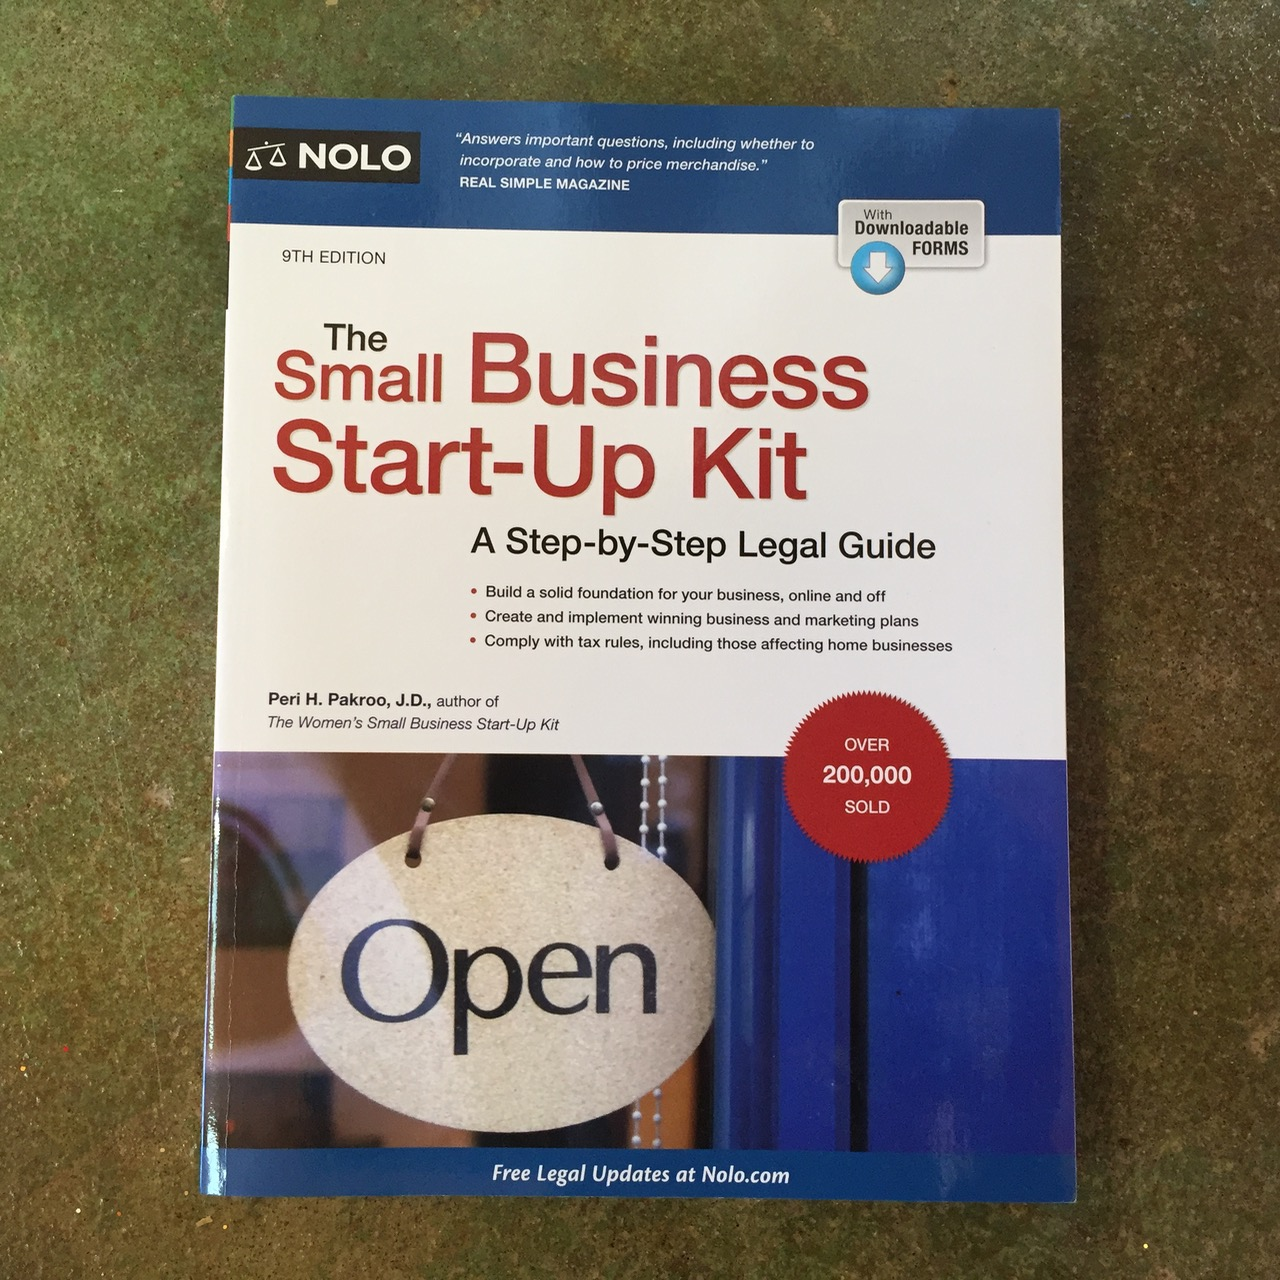 The Small Business Start-Up Kit by Peri Pakroo